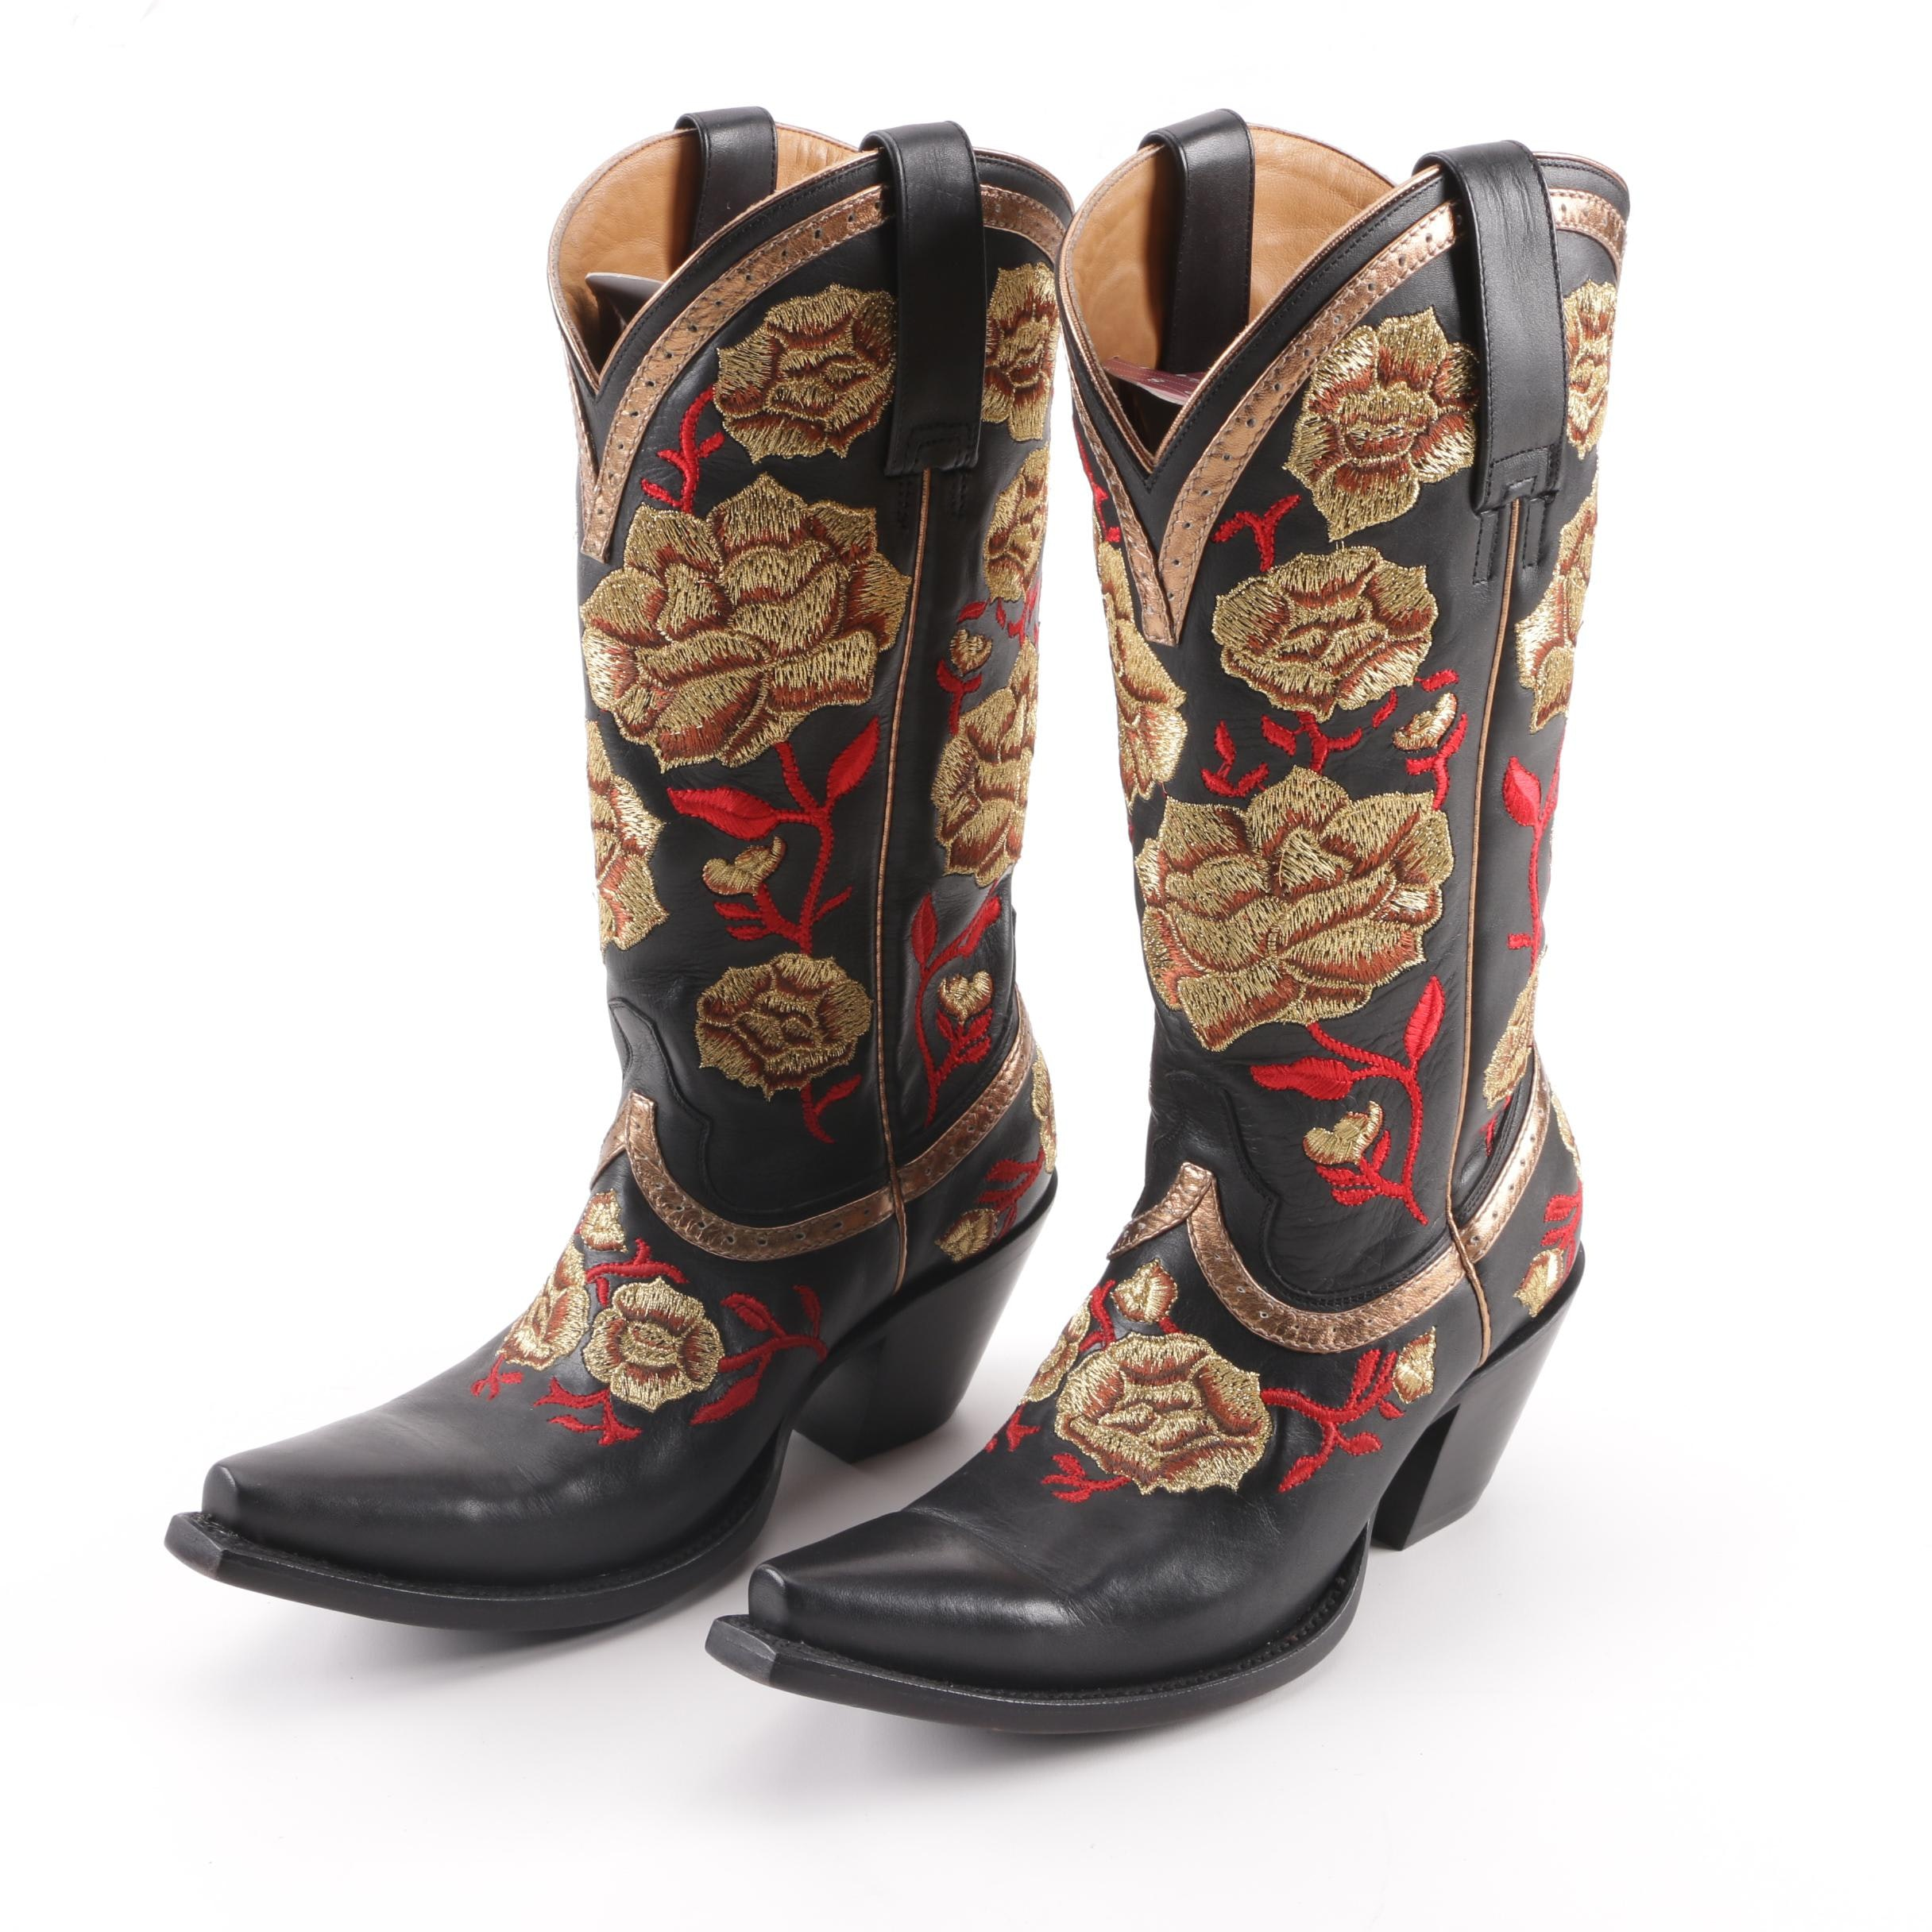 Women's Lucchese Gold and Red Rose Embroidered Black Leather Boots with Box